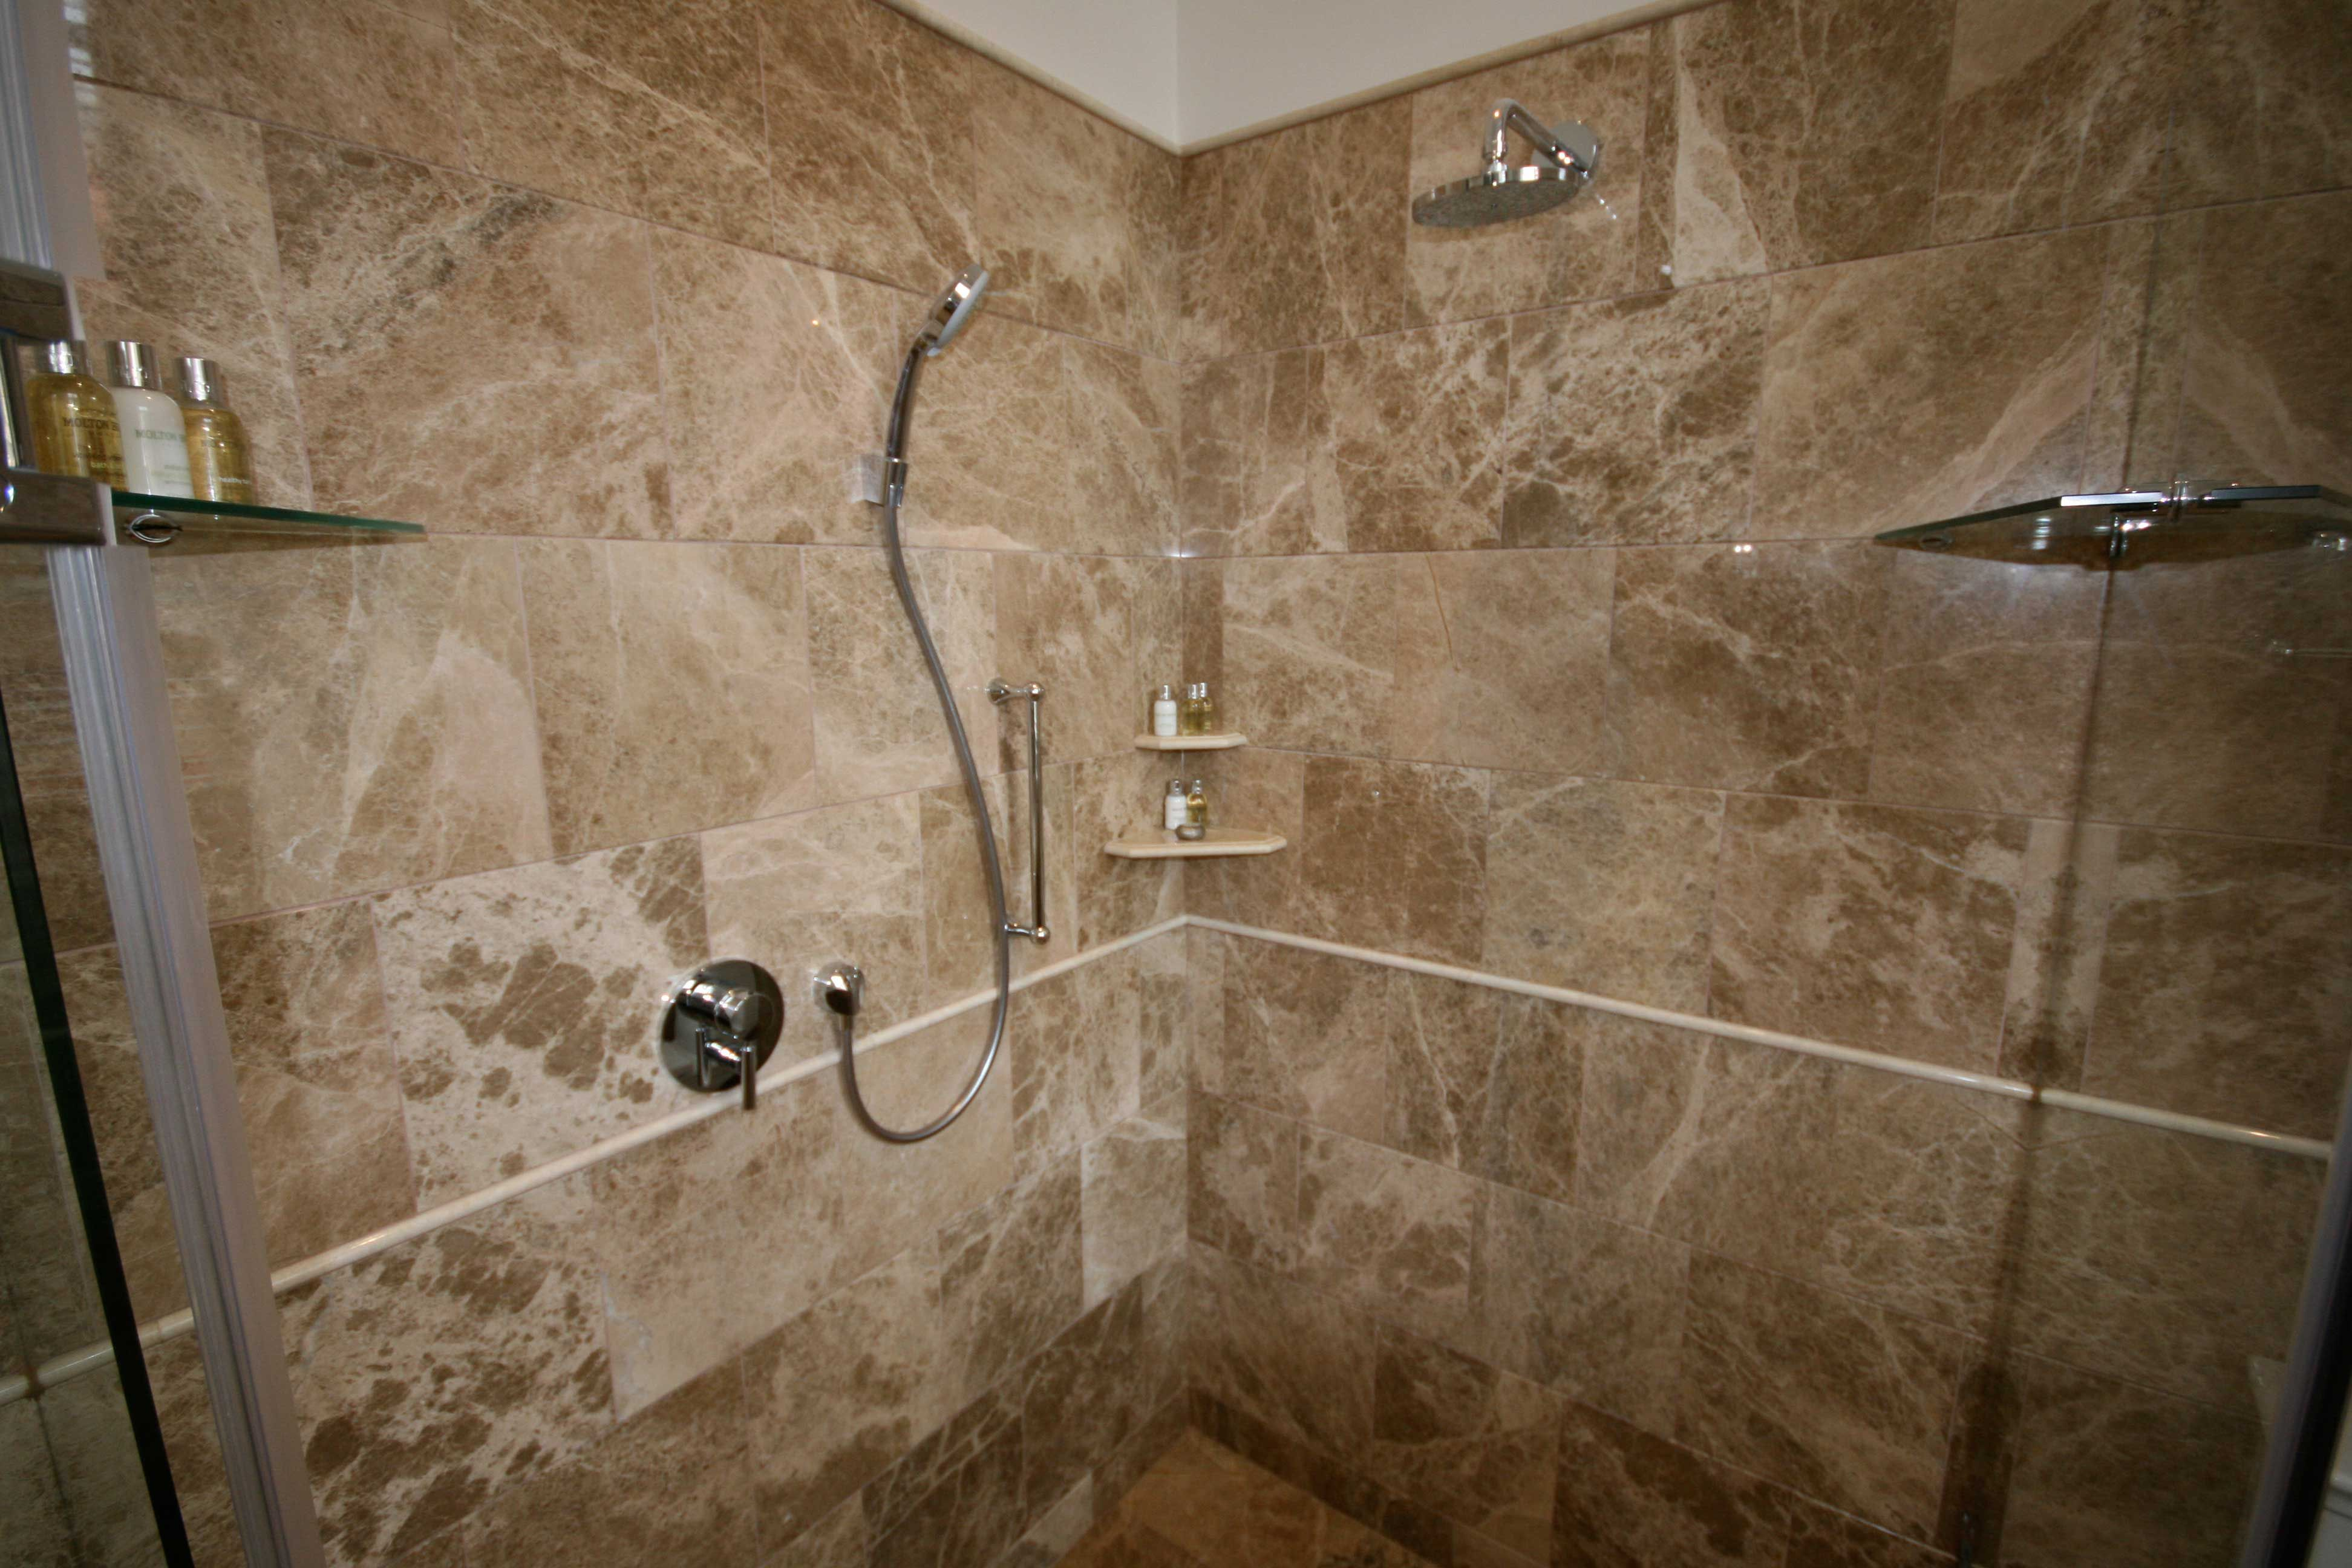 Brown Tile Inspiration For An Elegant Bathroom Remodel Small Bathroom Bathroom Classy Brown Marble Tile Shower Ideas And Bathroom Interior Free Standing Chrome